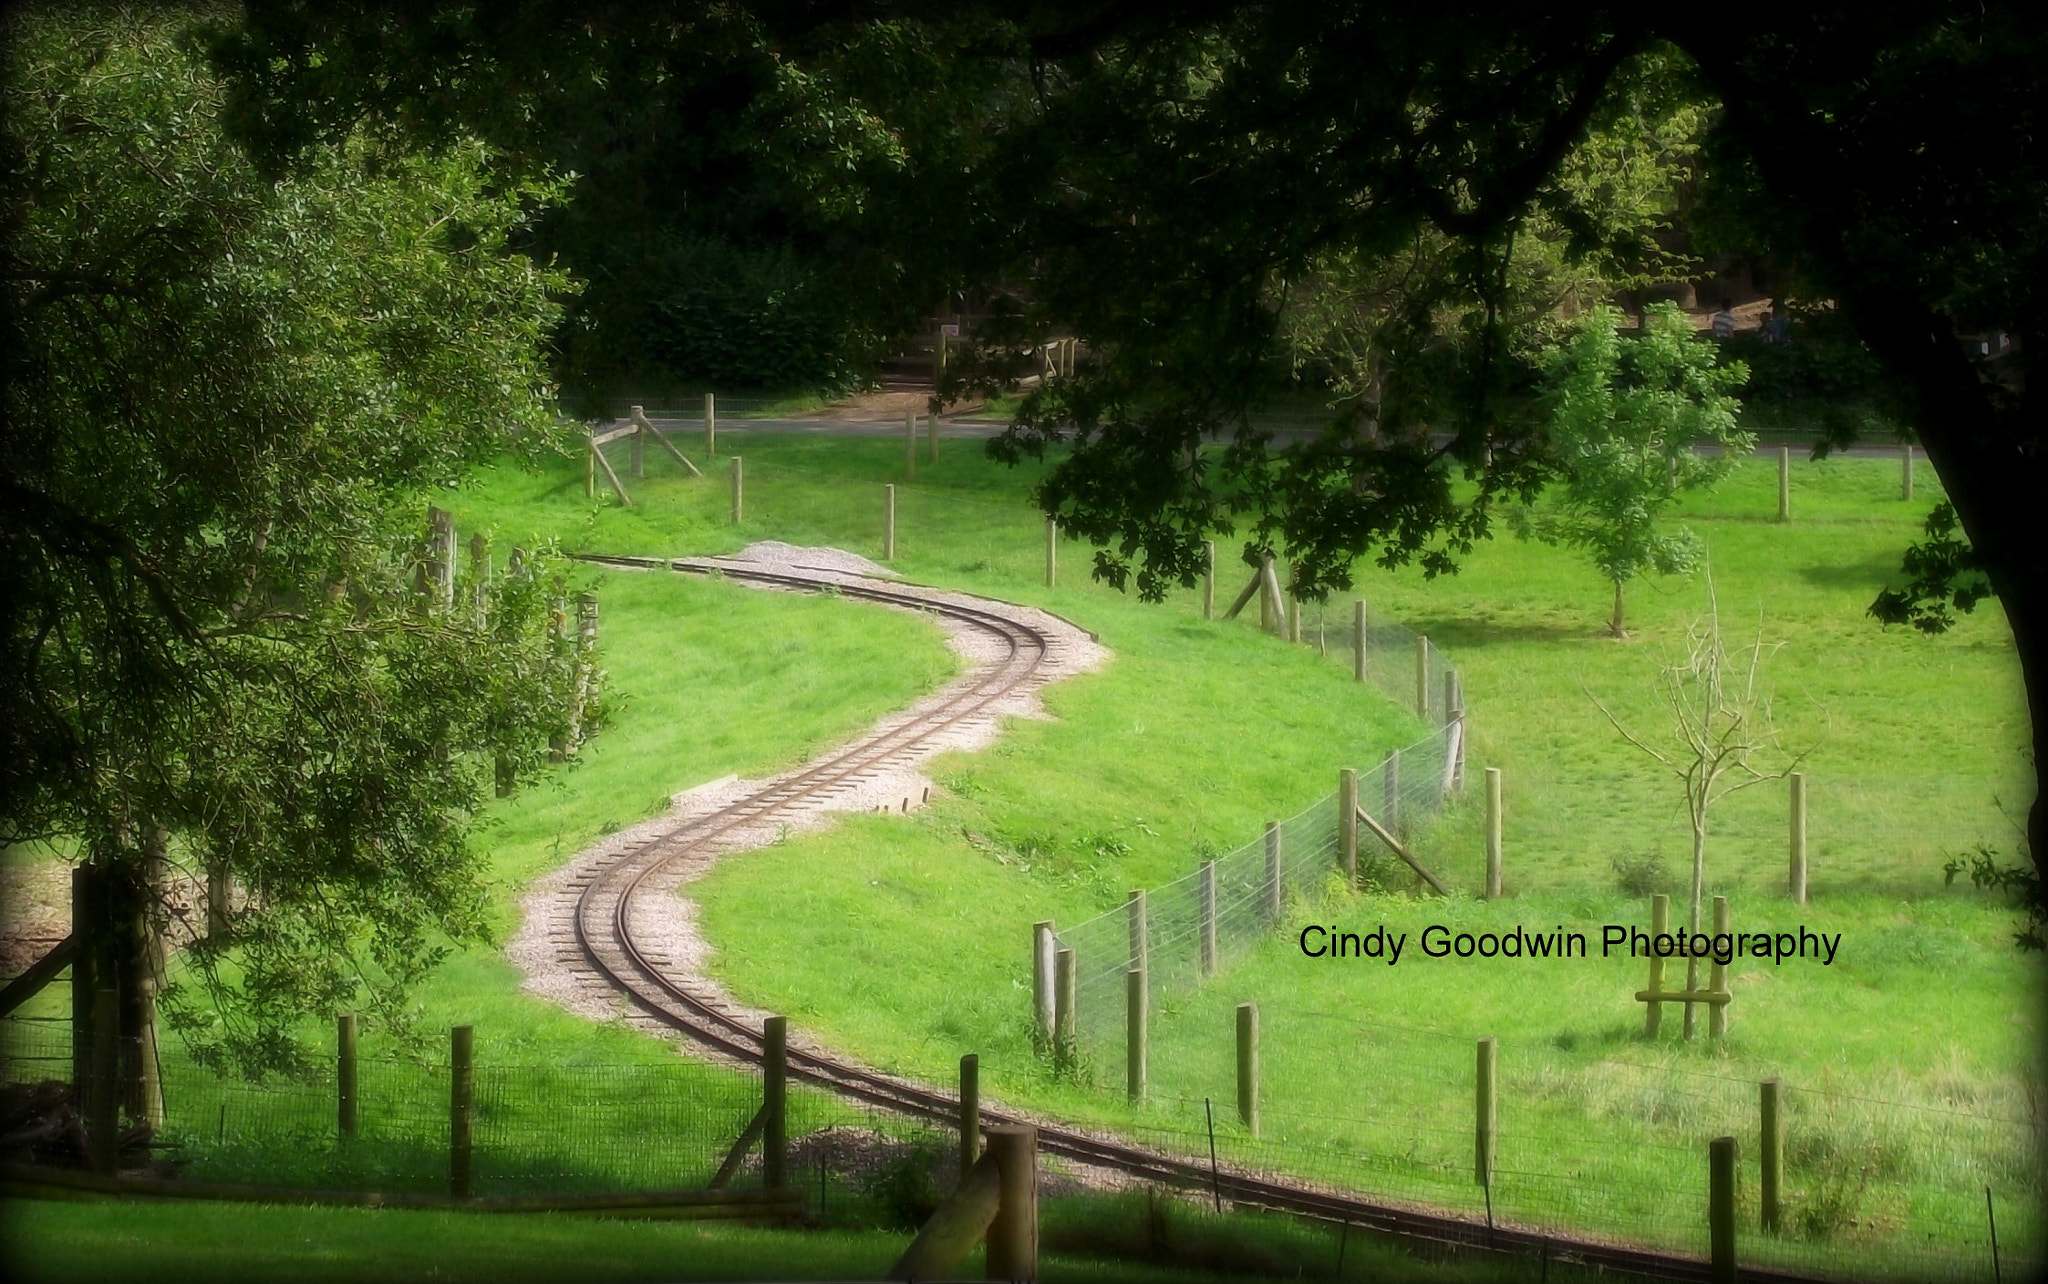 Photograph The Track by Cindy Goodwin on 500px